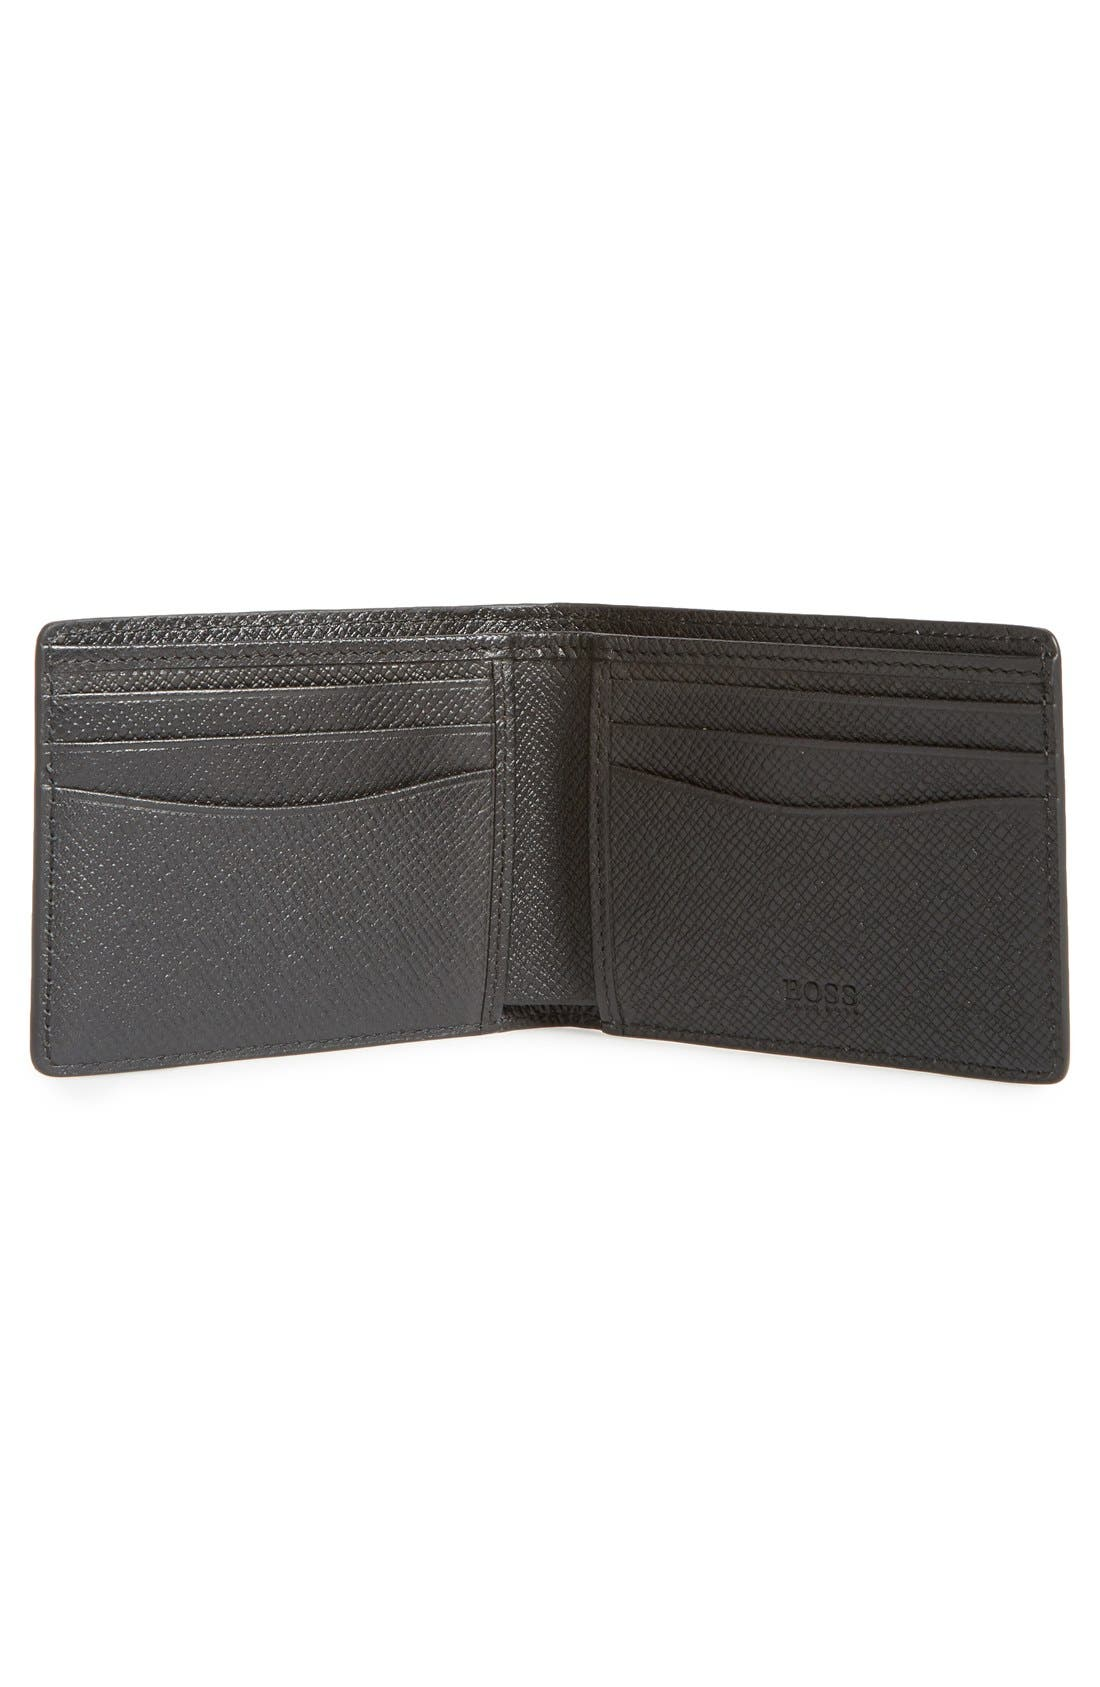 BOSS,                             'Signature' Bifold Calfskin Leather Wallet,                             Alternate thumbnail 2, color,                             BLACK